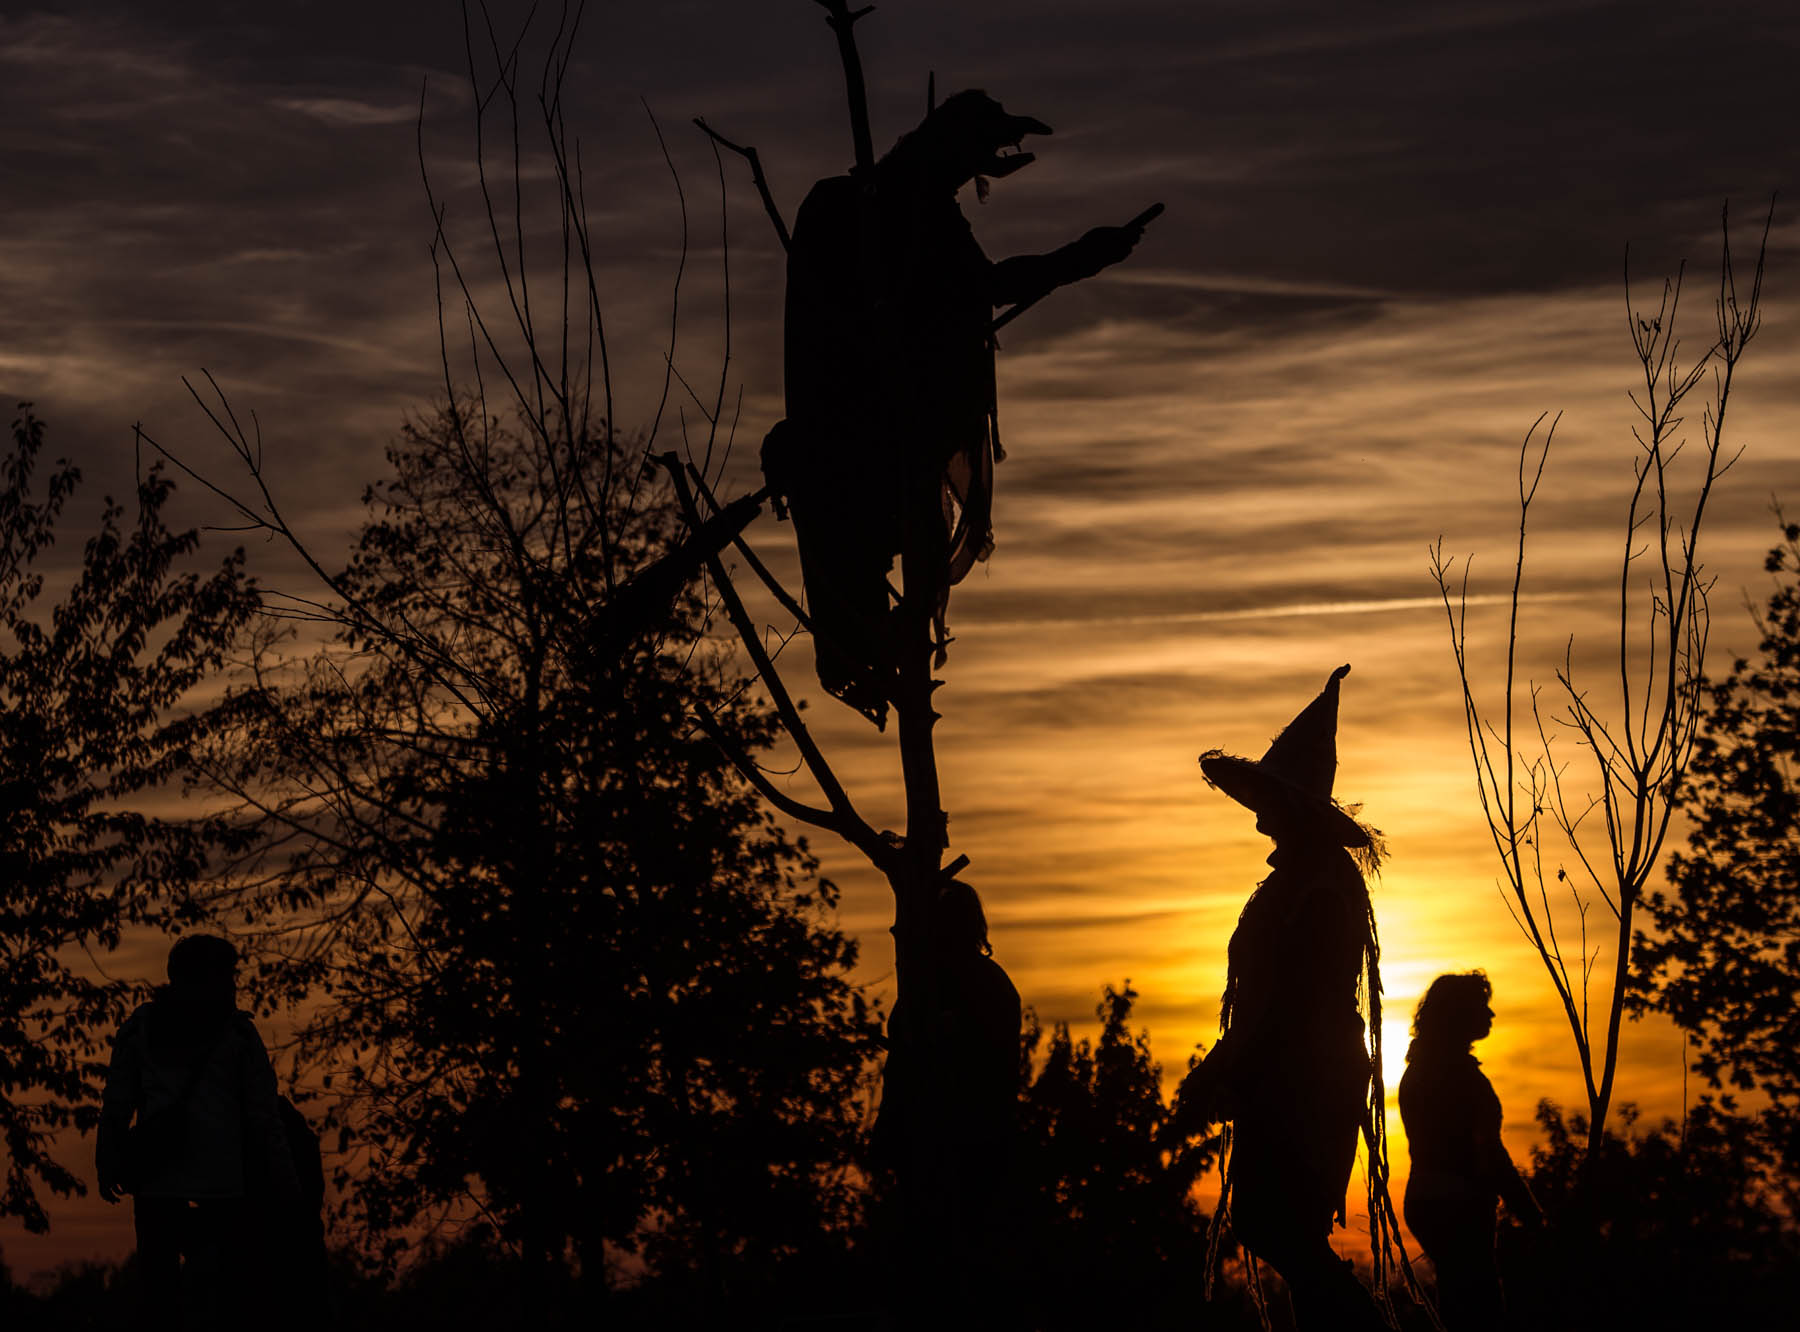 Silhouettes of a figure in a tree with a broom and people dressed as witches walking near it (© AP Images)